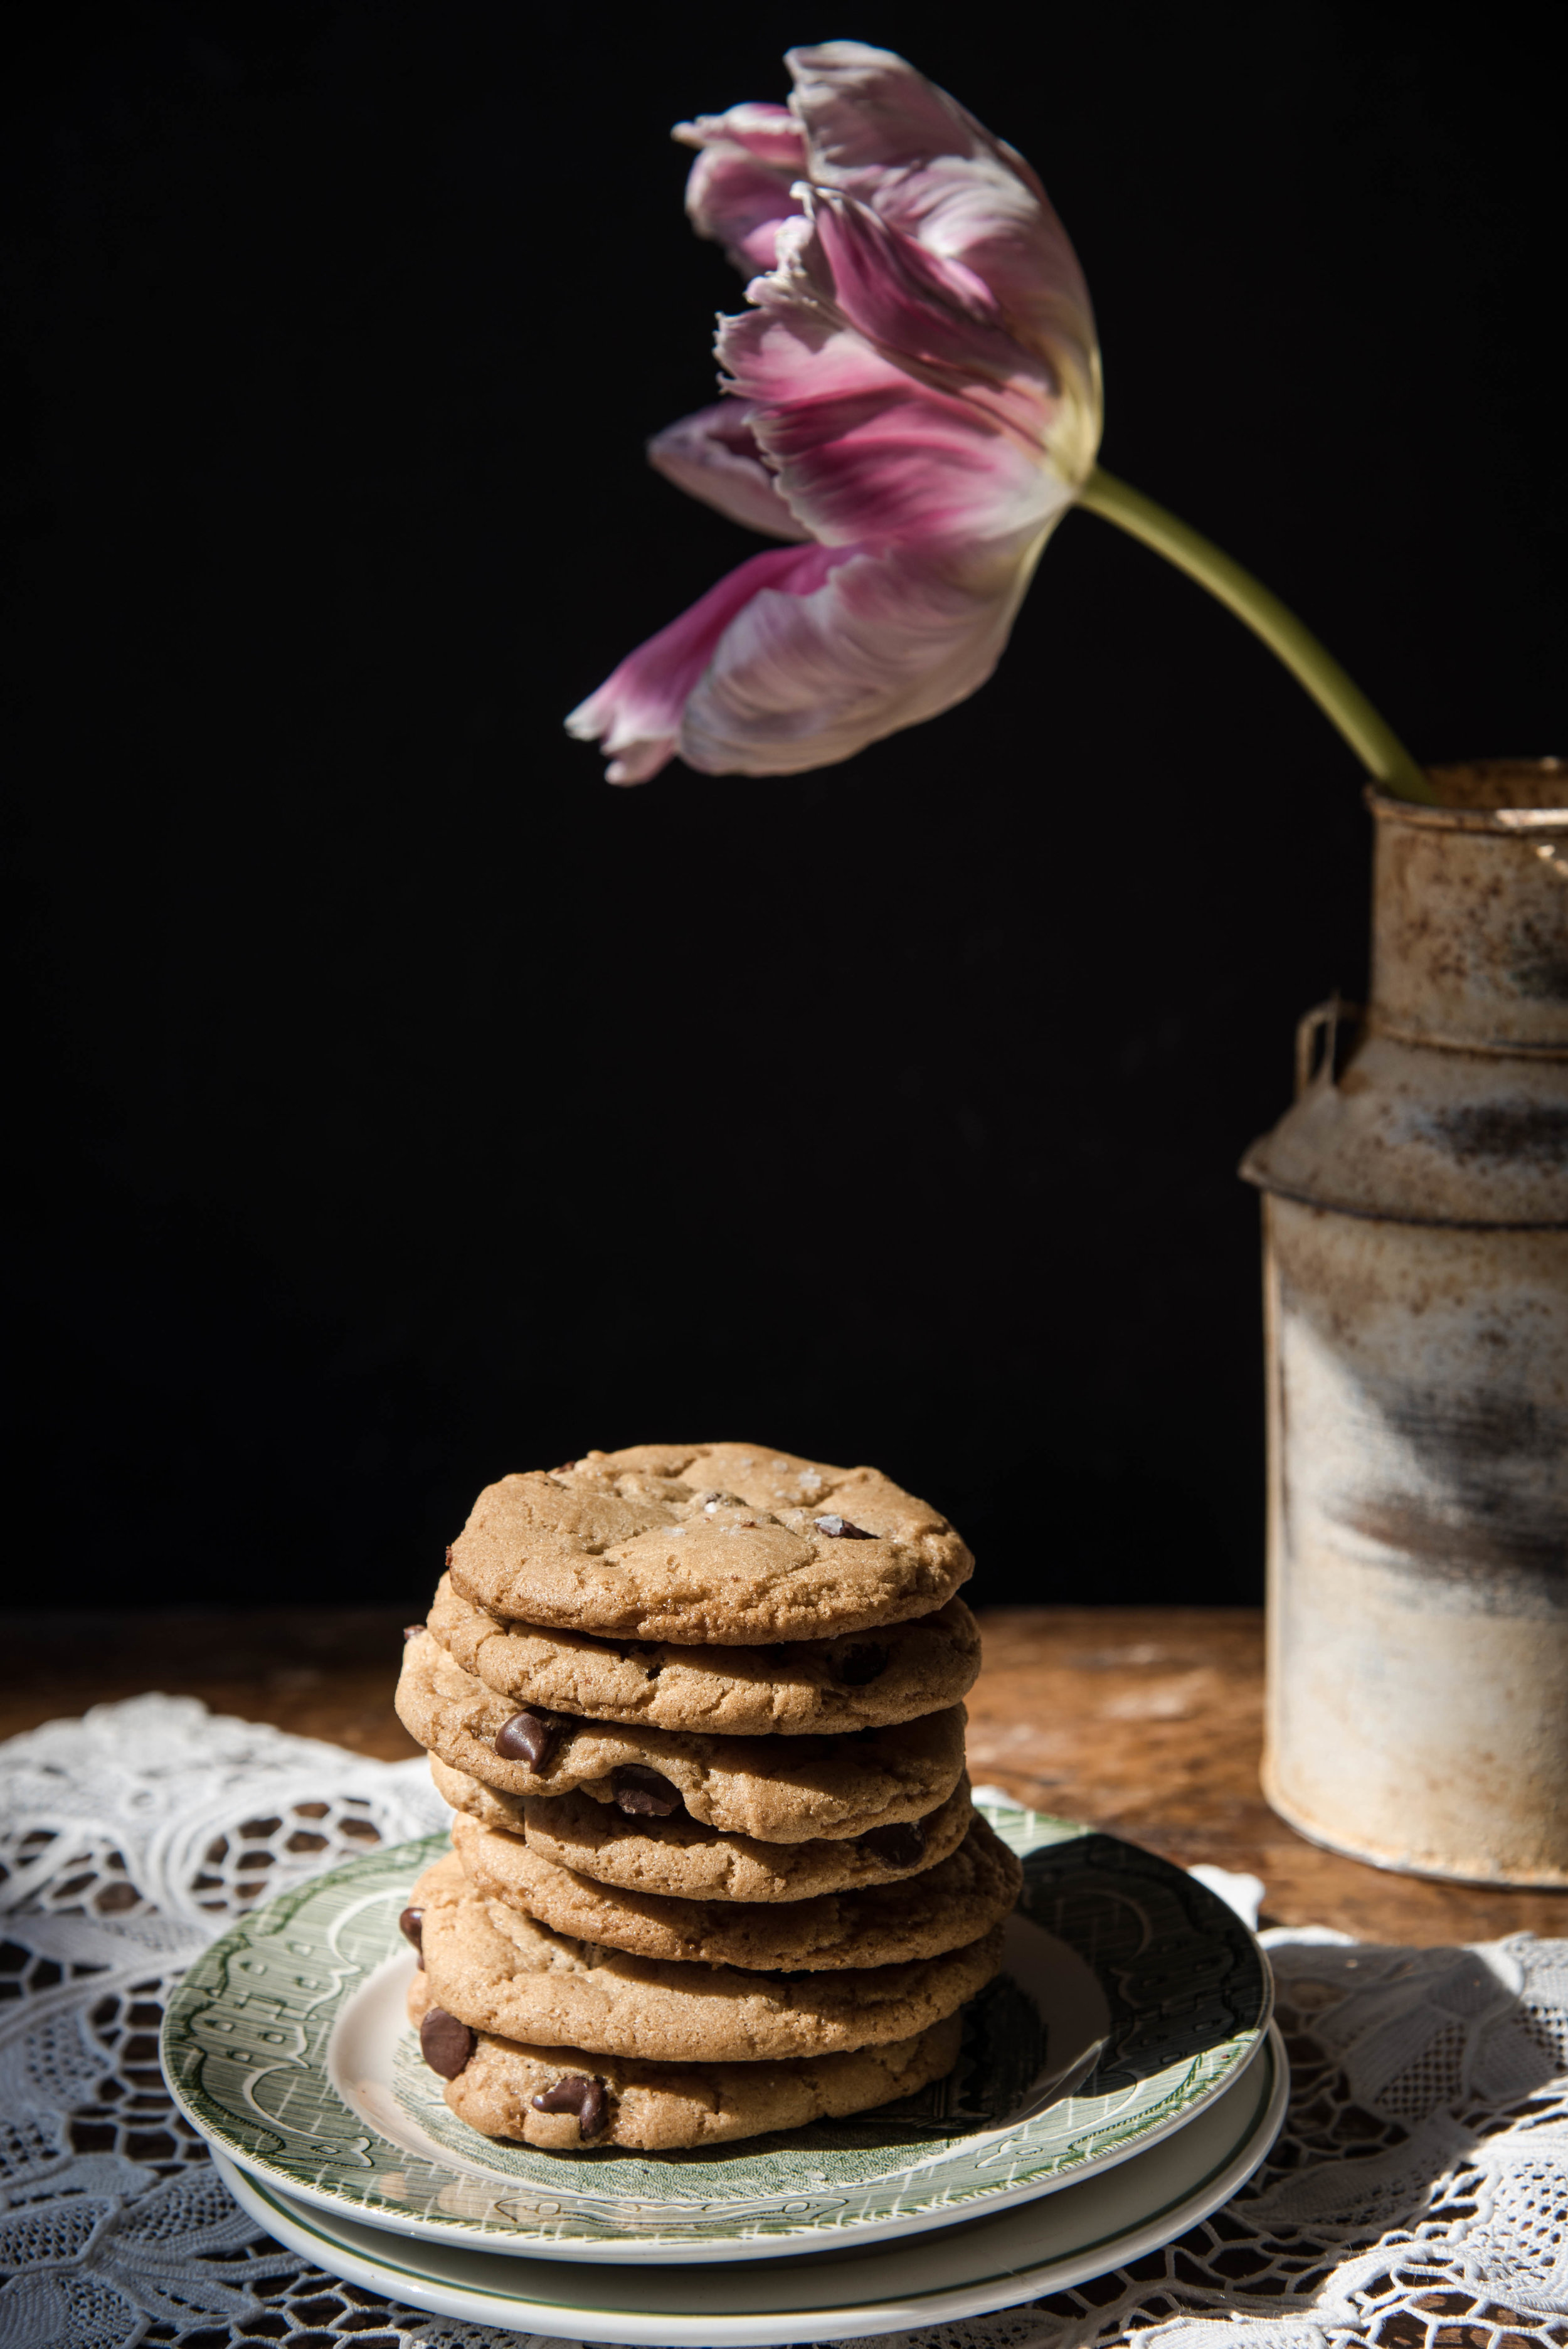 ROSE & IVY Journal Ovenly's Vegan Chocolate Chip Cookies